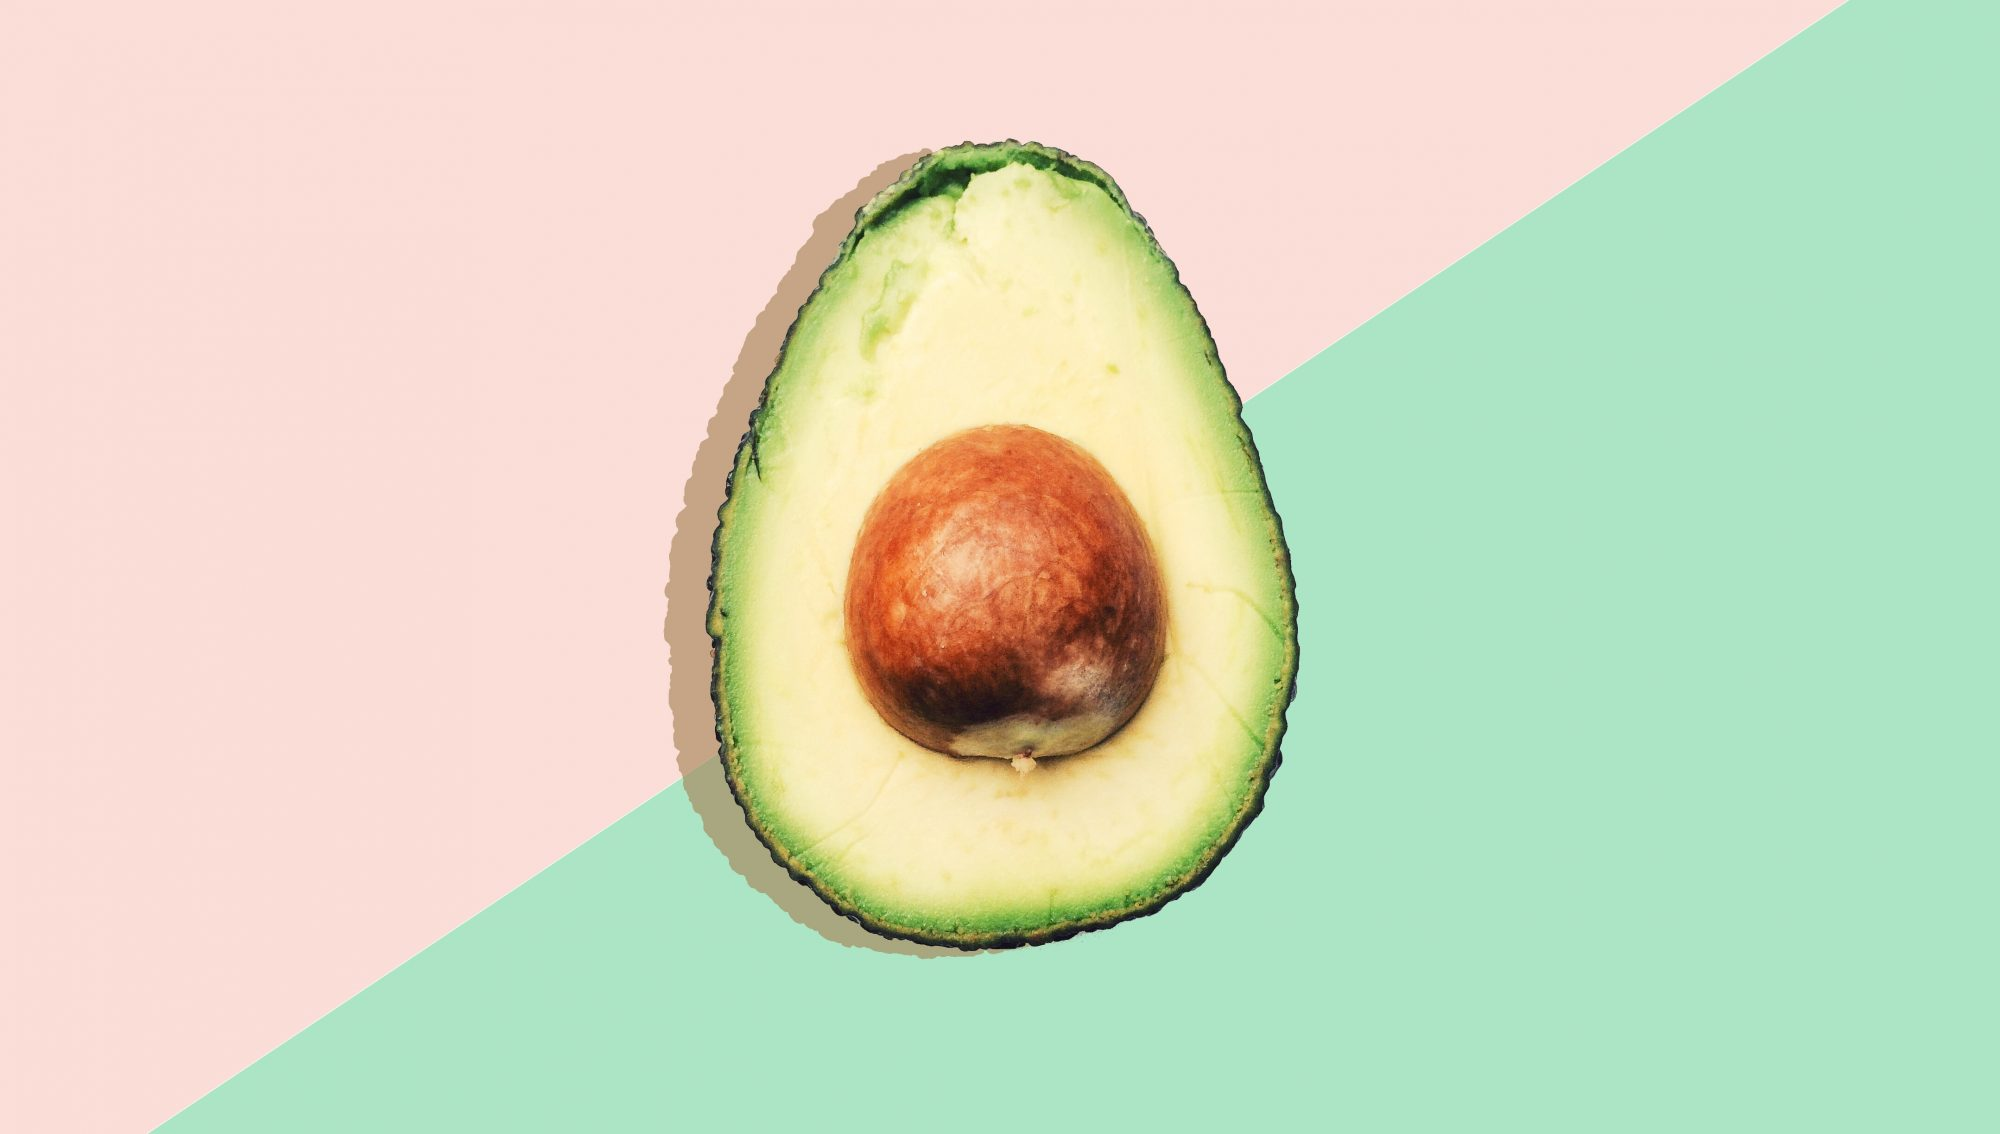 This Is the Best Way to Speed up—and Slow Down—the Ripening of Avocados